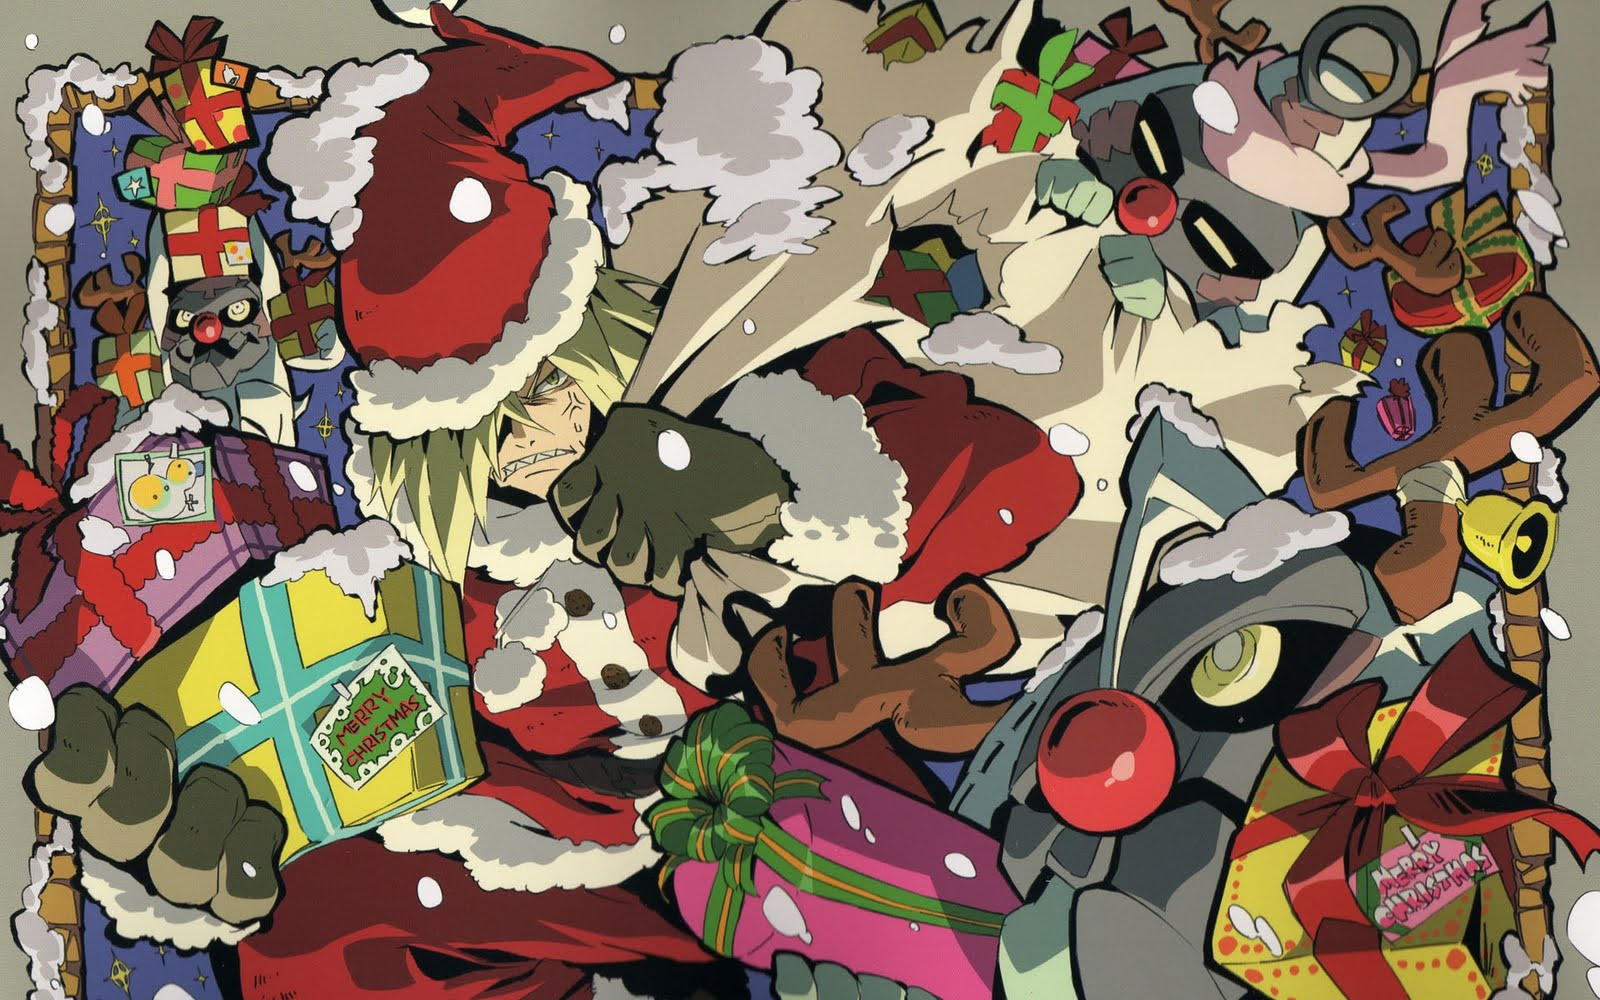 Wallpaper Depot: 15 Anime Christmas Wallpapers